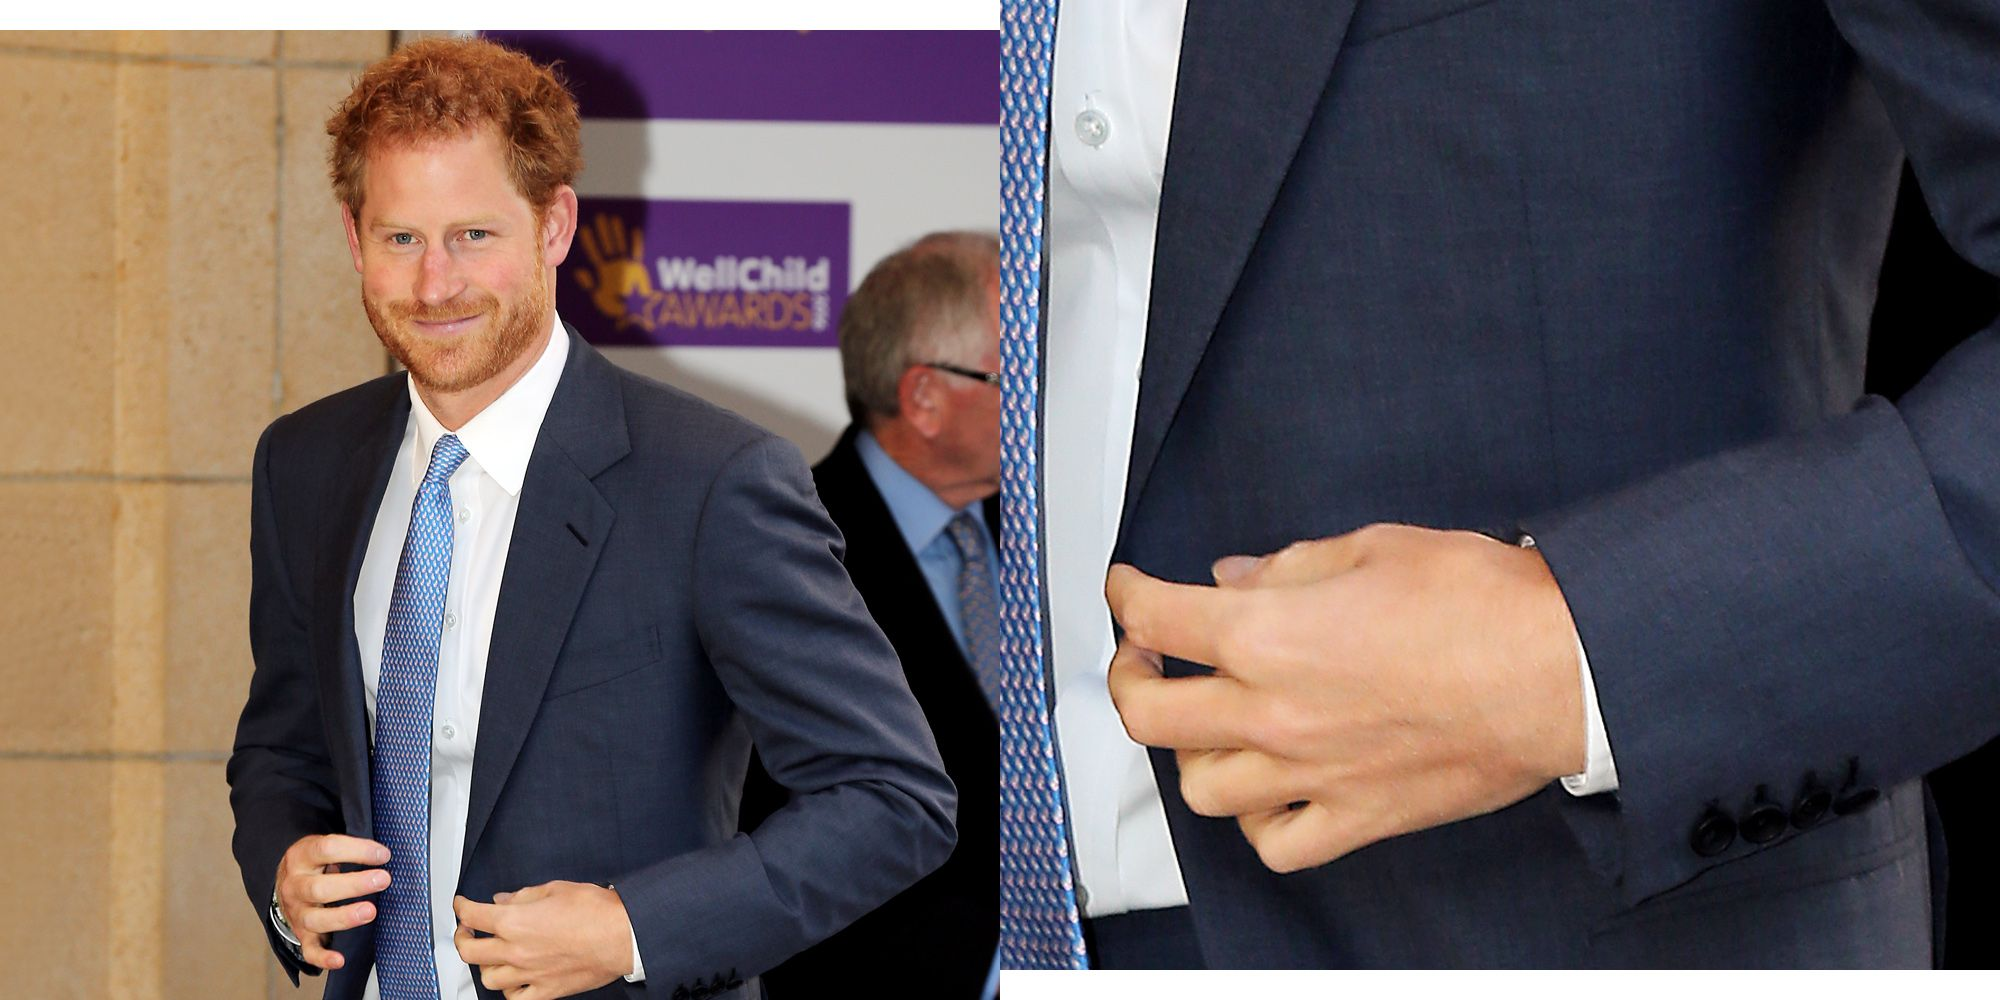 Prince Harry Royal Wedding Ring Photos Prince Harry Wedding Ring